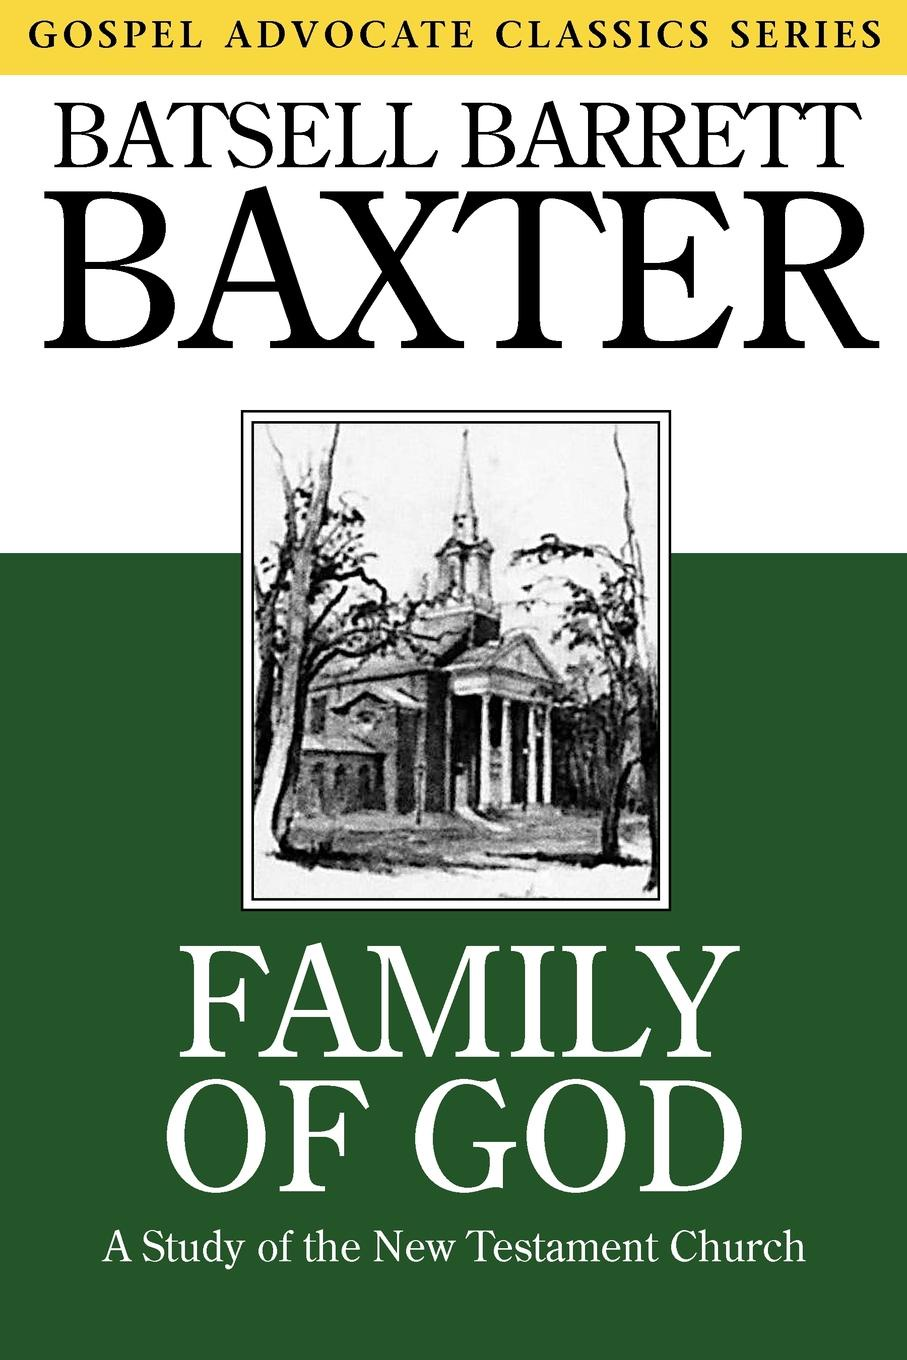 лучшая цена Batsell Barrett Baxter Family of God. A Study of the New Testament Church